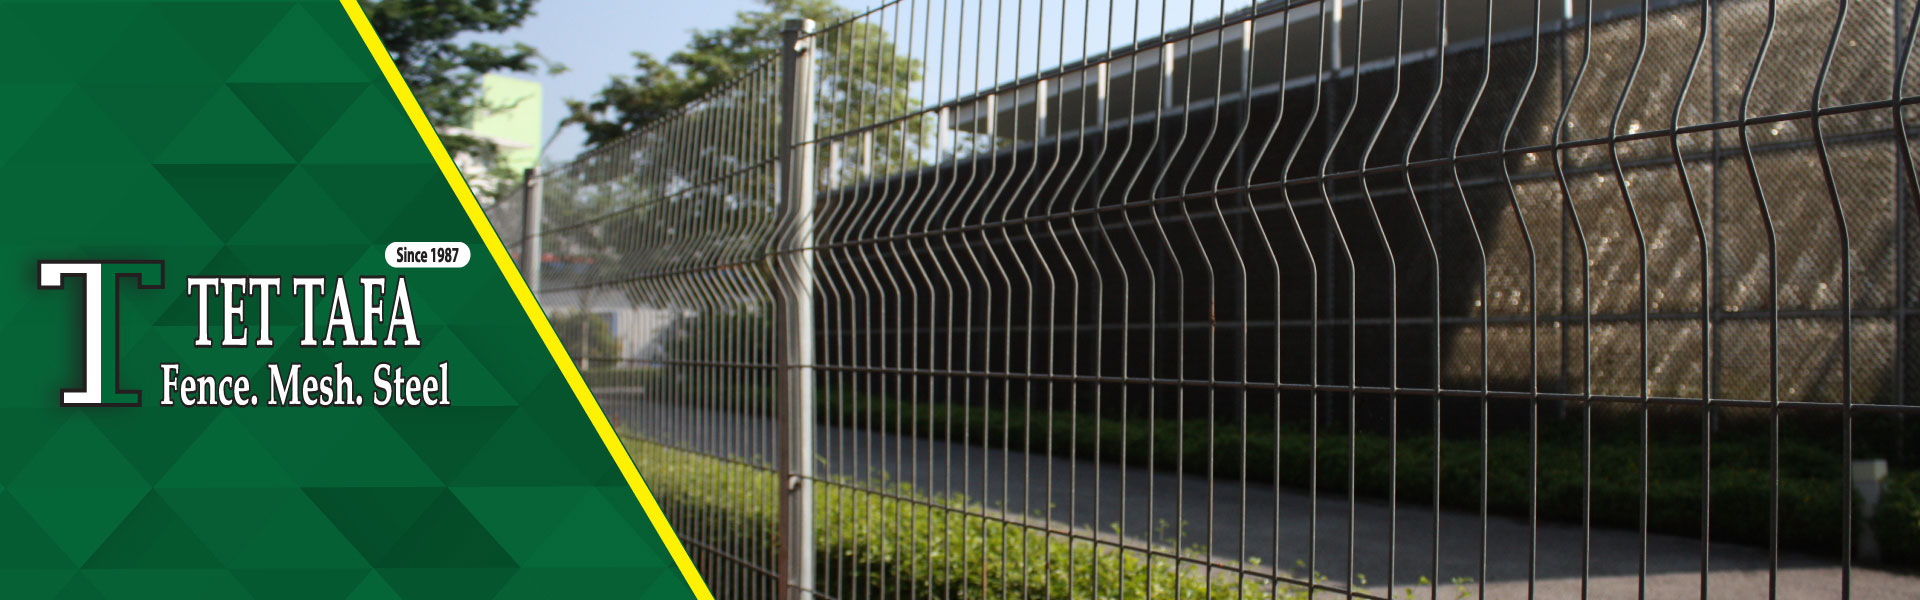 Malaysia Security Fence Wire Mesh And Barbed Wire Tet Tafa